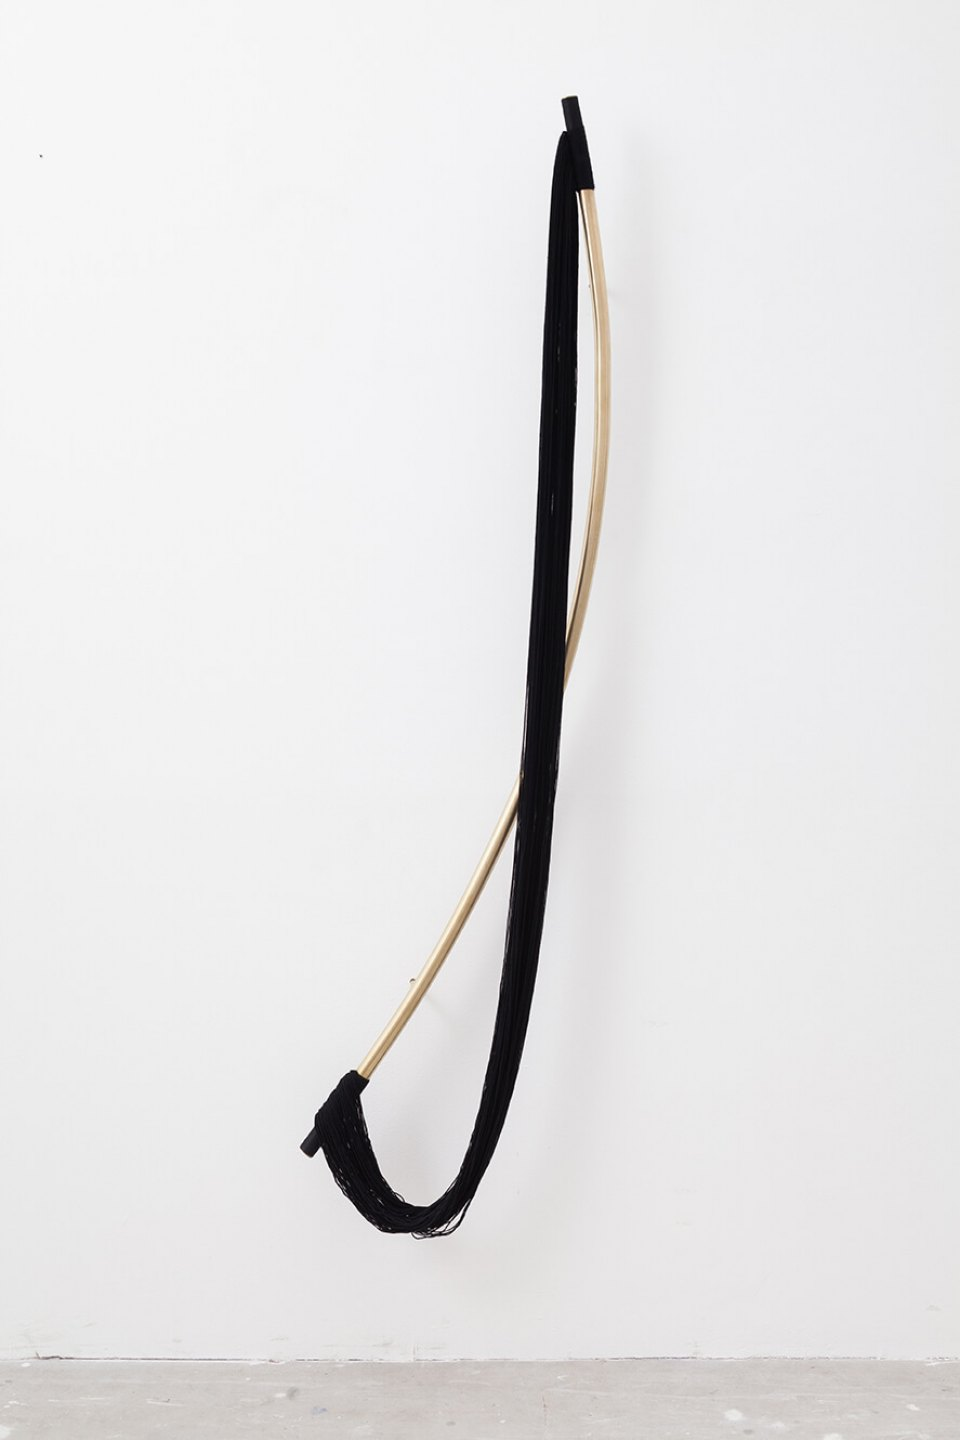 Paloma Bosquê, <em>Bow</em>, 2015, bronze, brass and wool, 165 × 40 cm - Mendes Wood DM